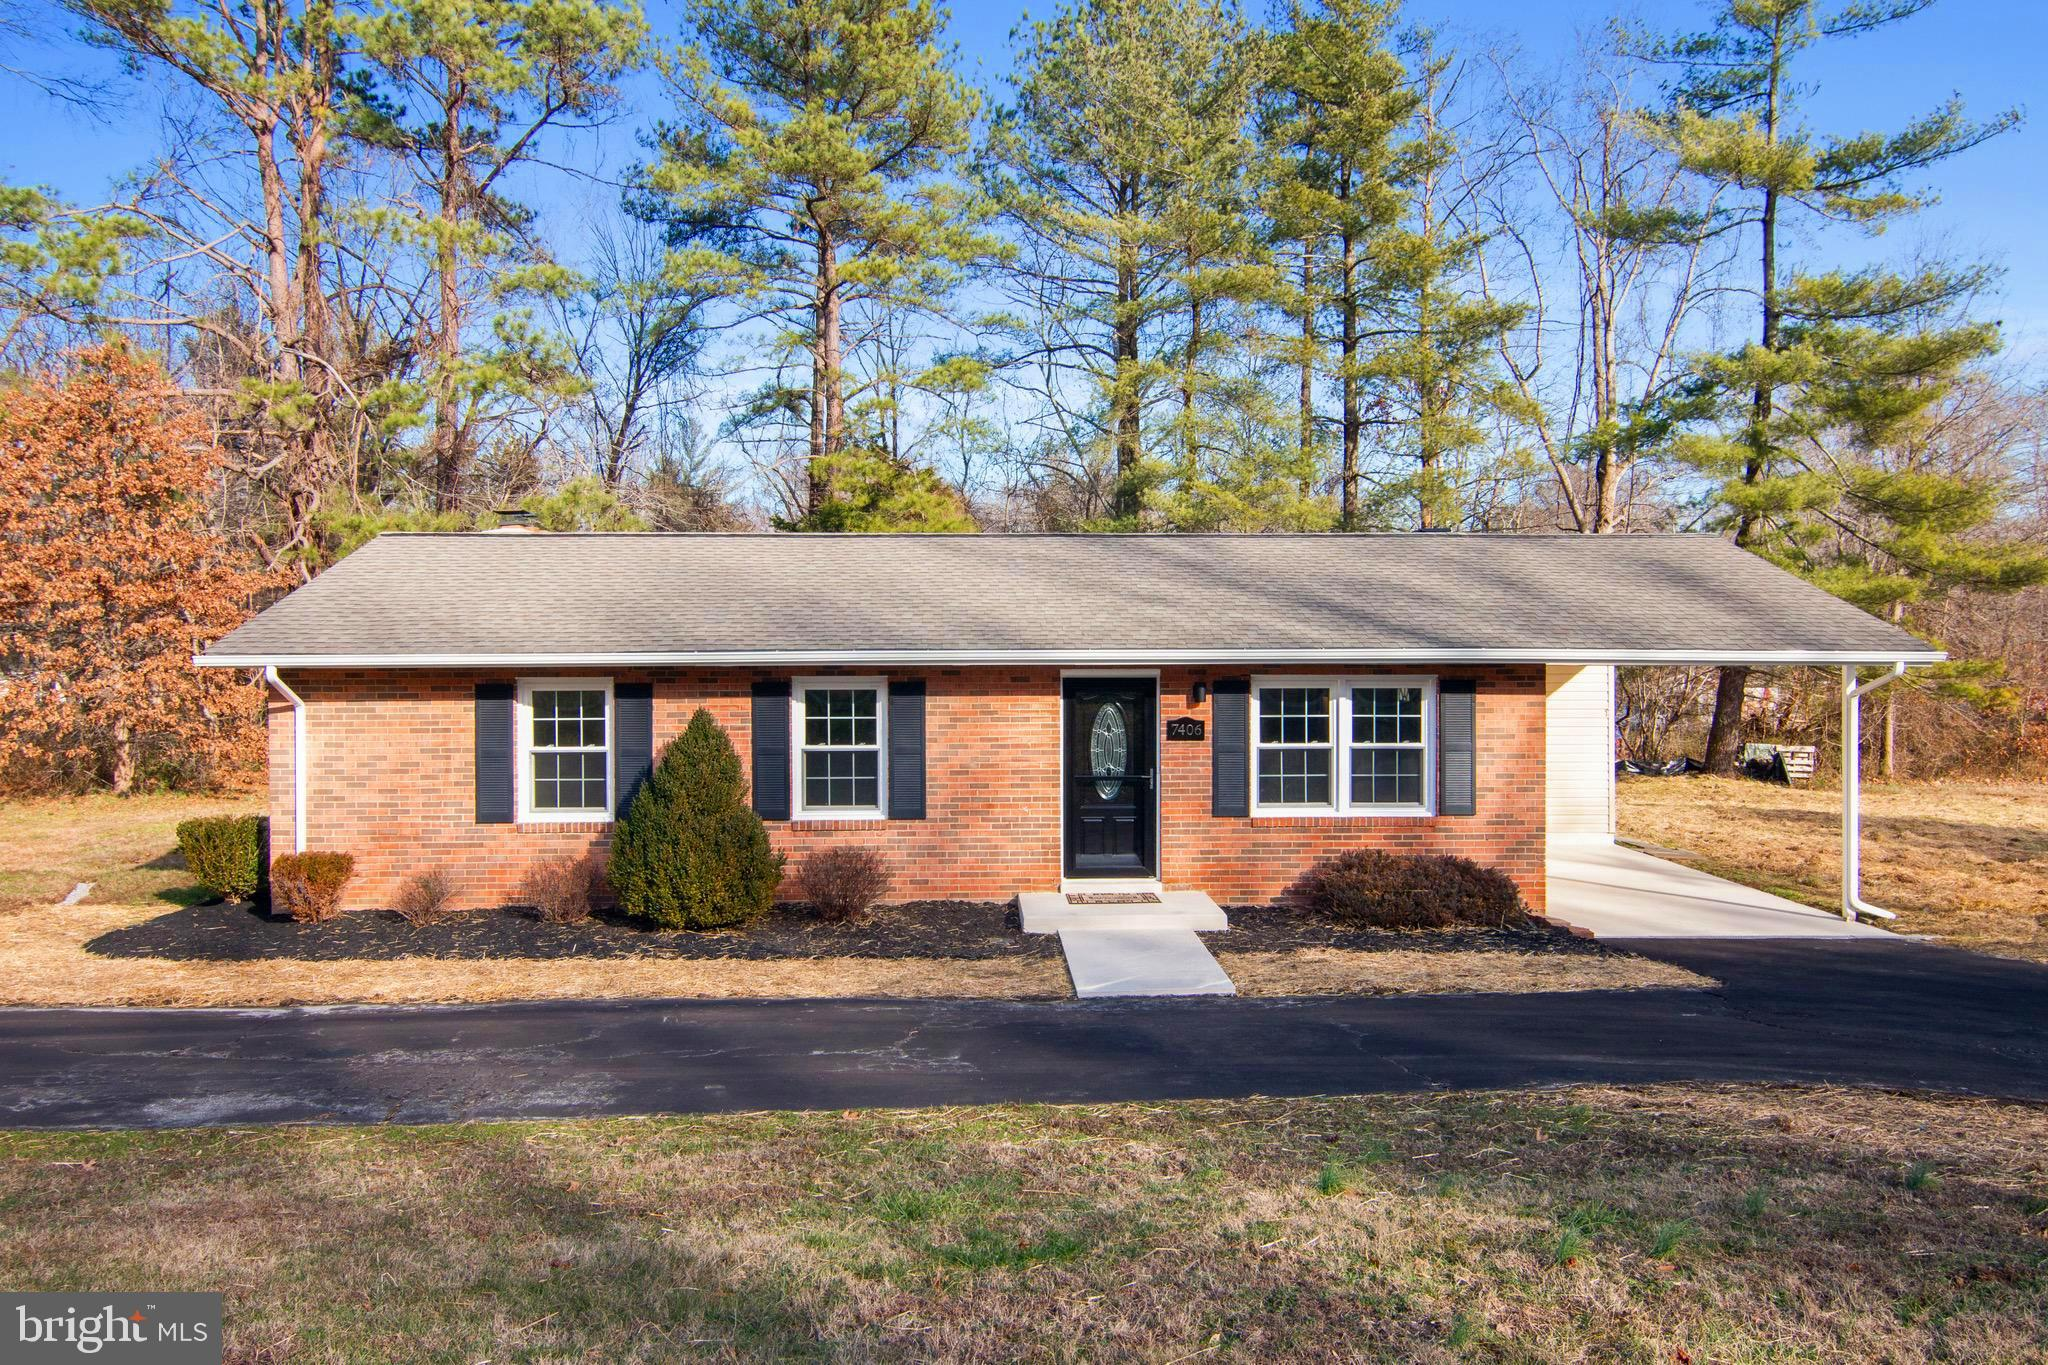 Sellers did a fantastic job of totally renovating this lovely ranch home .Within walking distance to